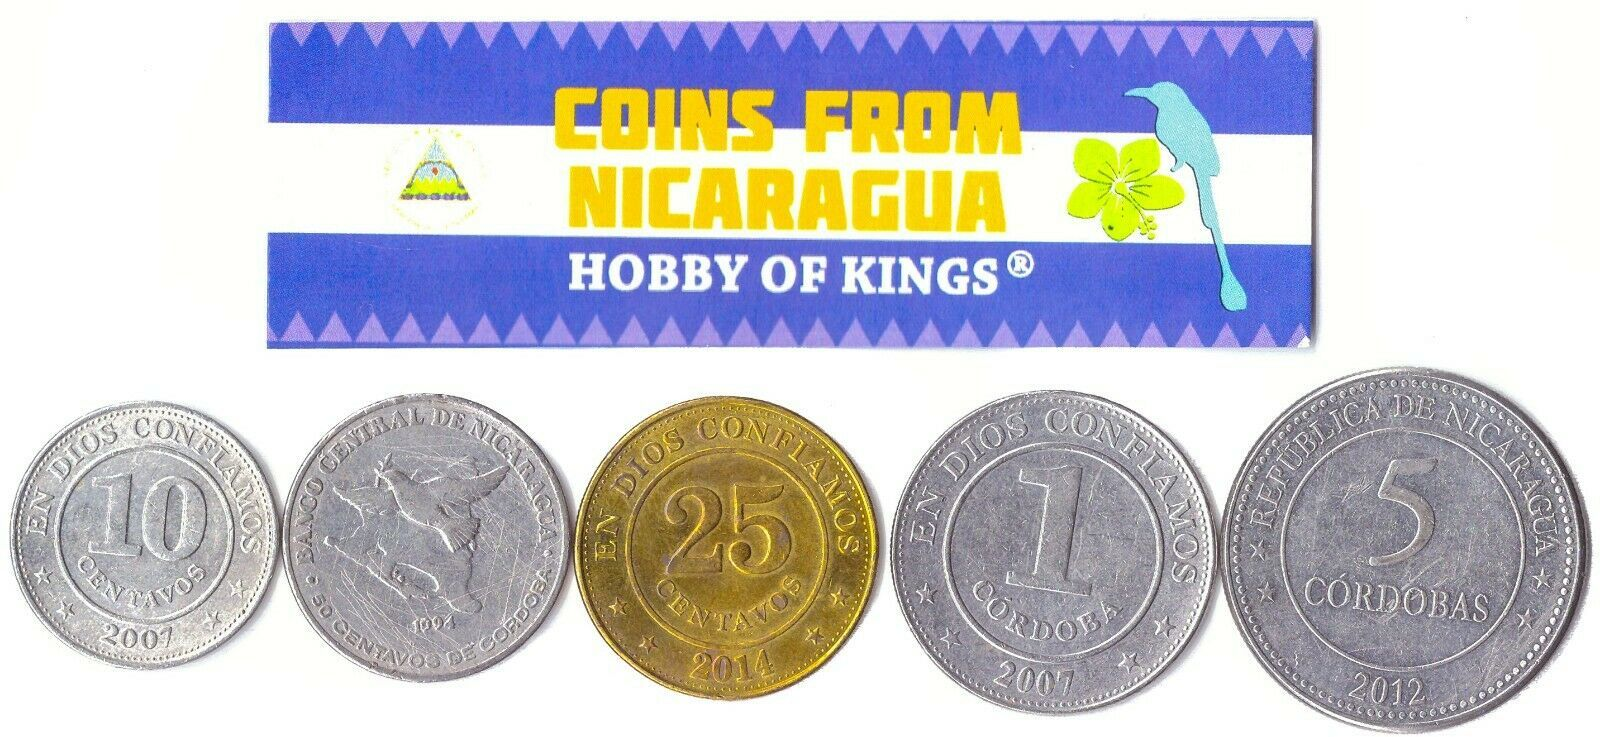 5 NICARAGUAN COINS DIFFERENT COLLECTIBLE CENTRAL AMERICA COINS FOREIGN CURRENCY